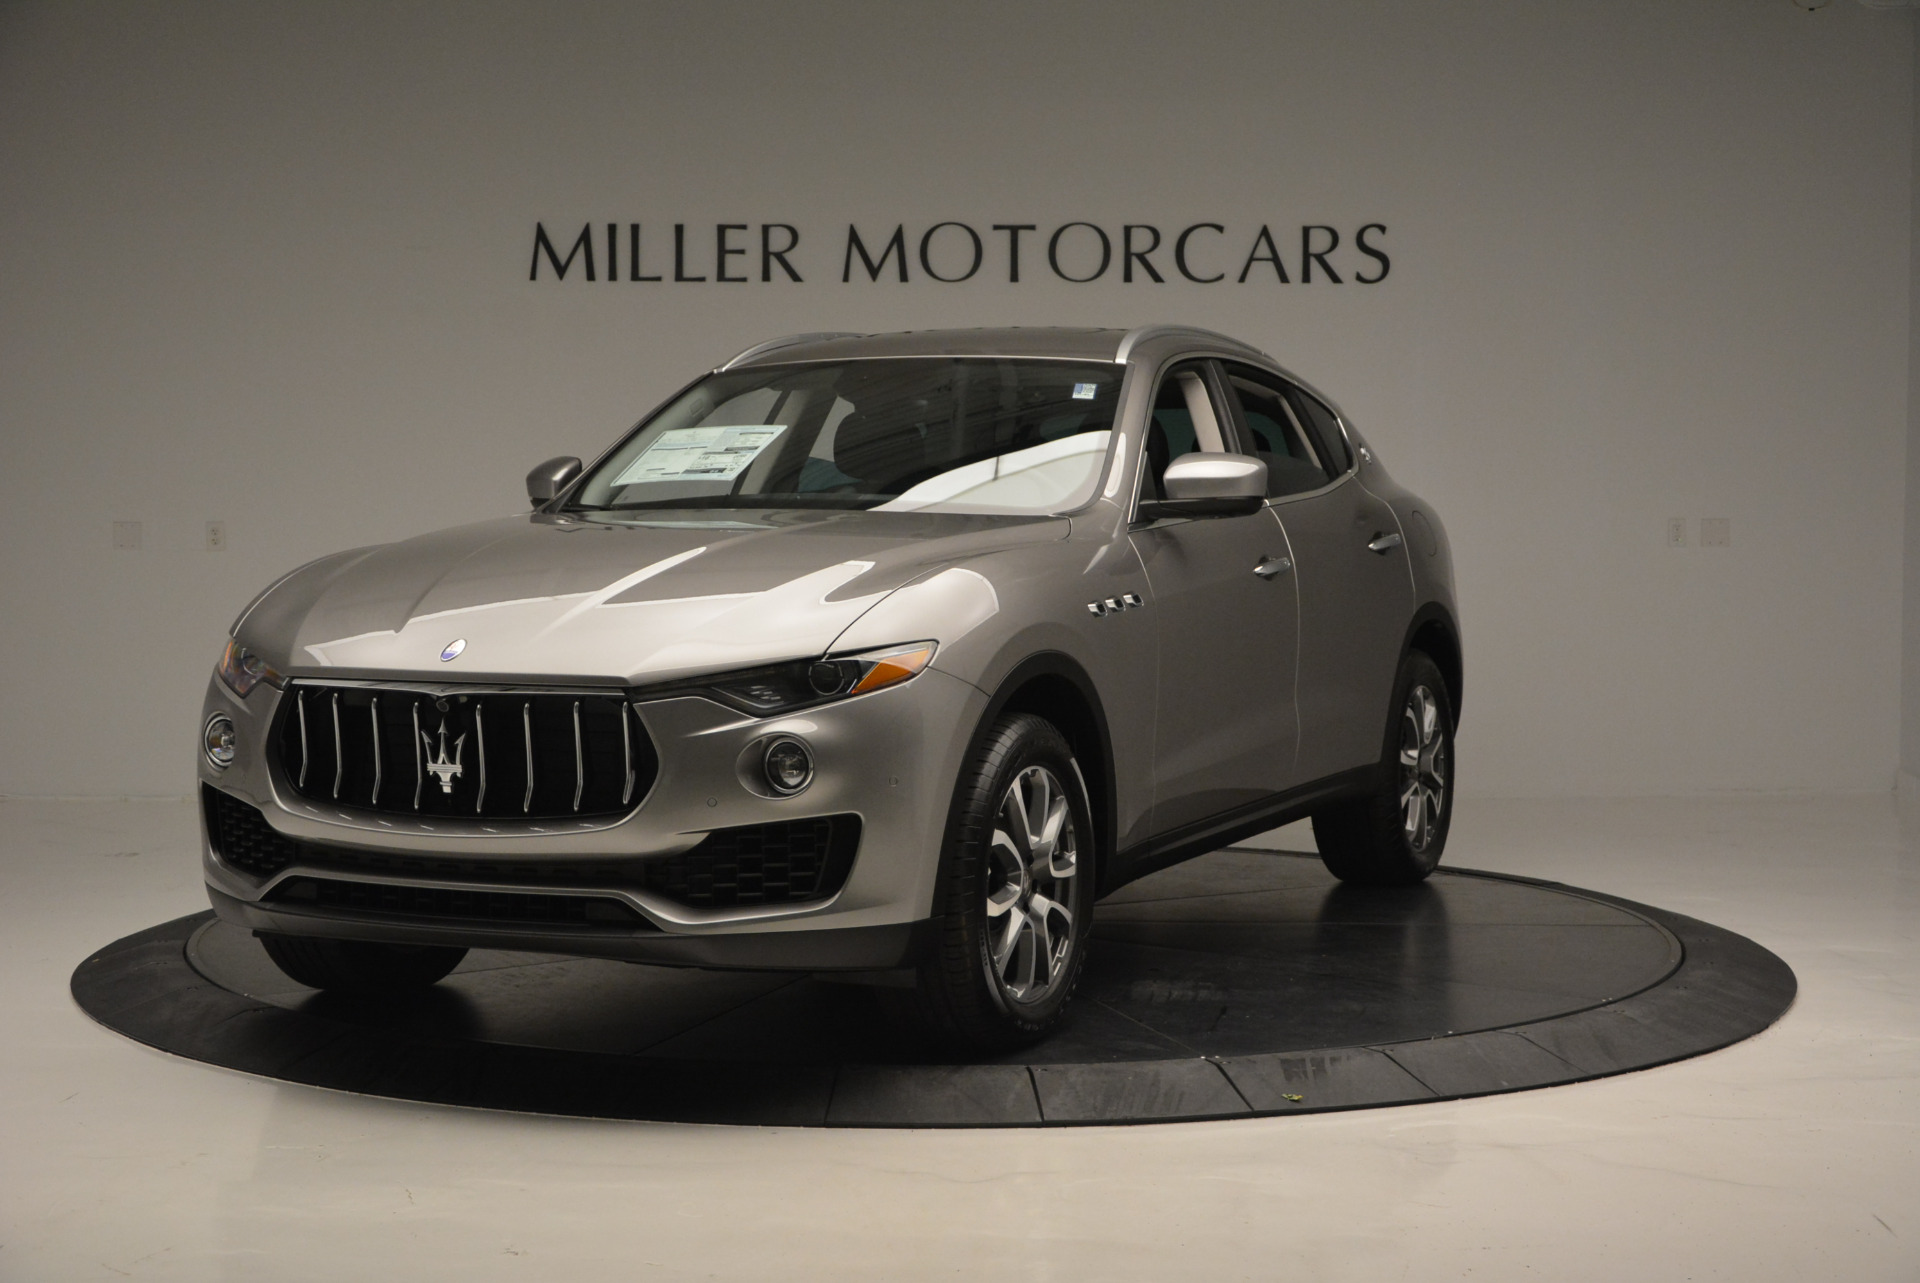 New 2017 Maserati Levante 350hp For Sale In Greenwich, CT 582_main